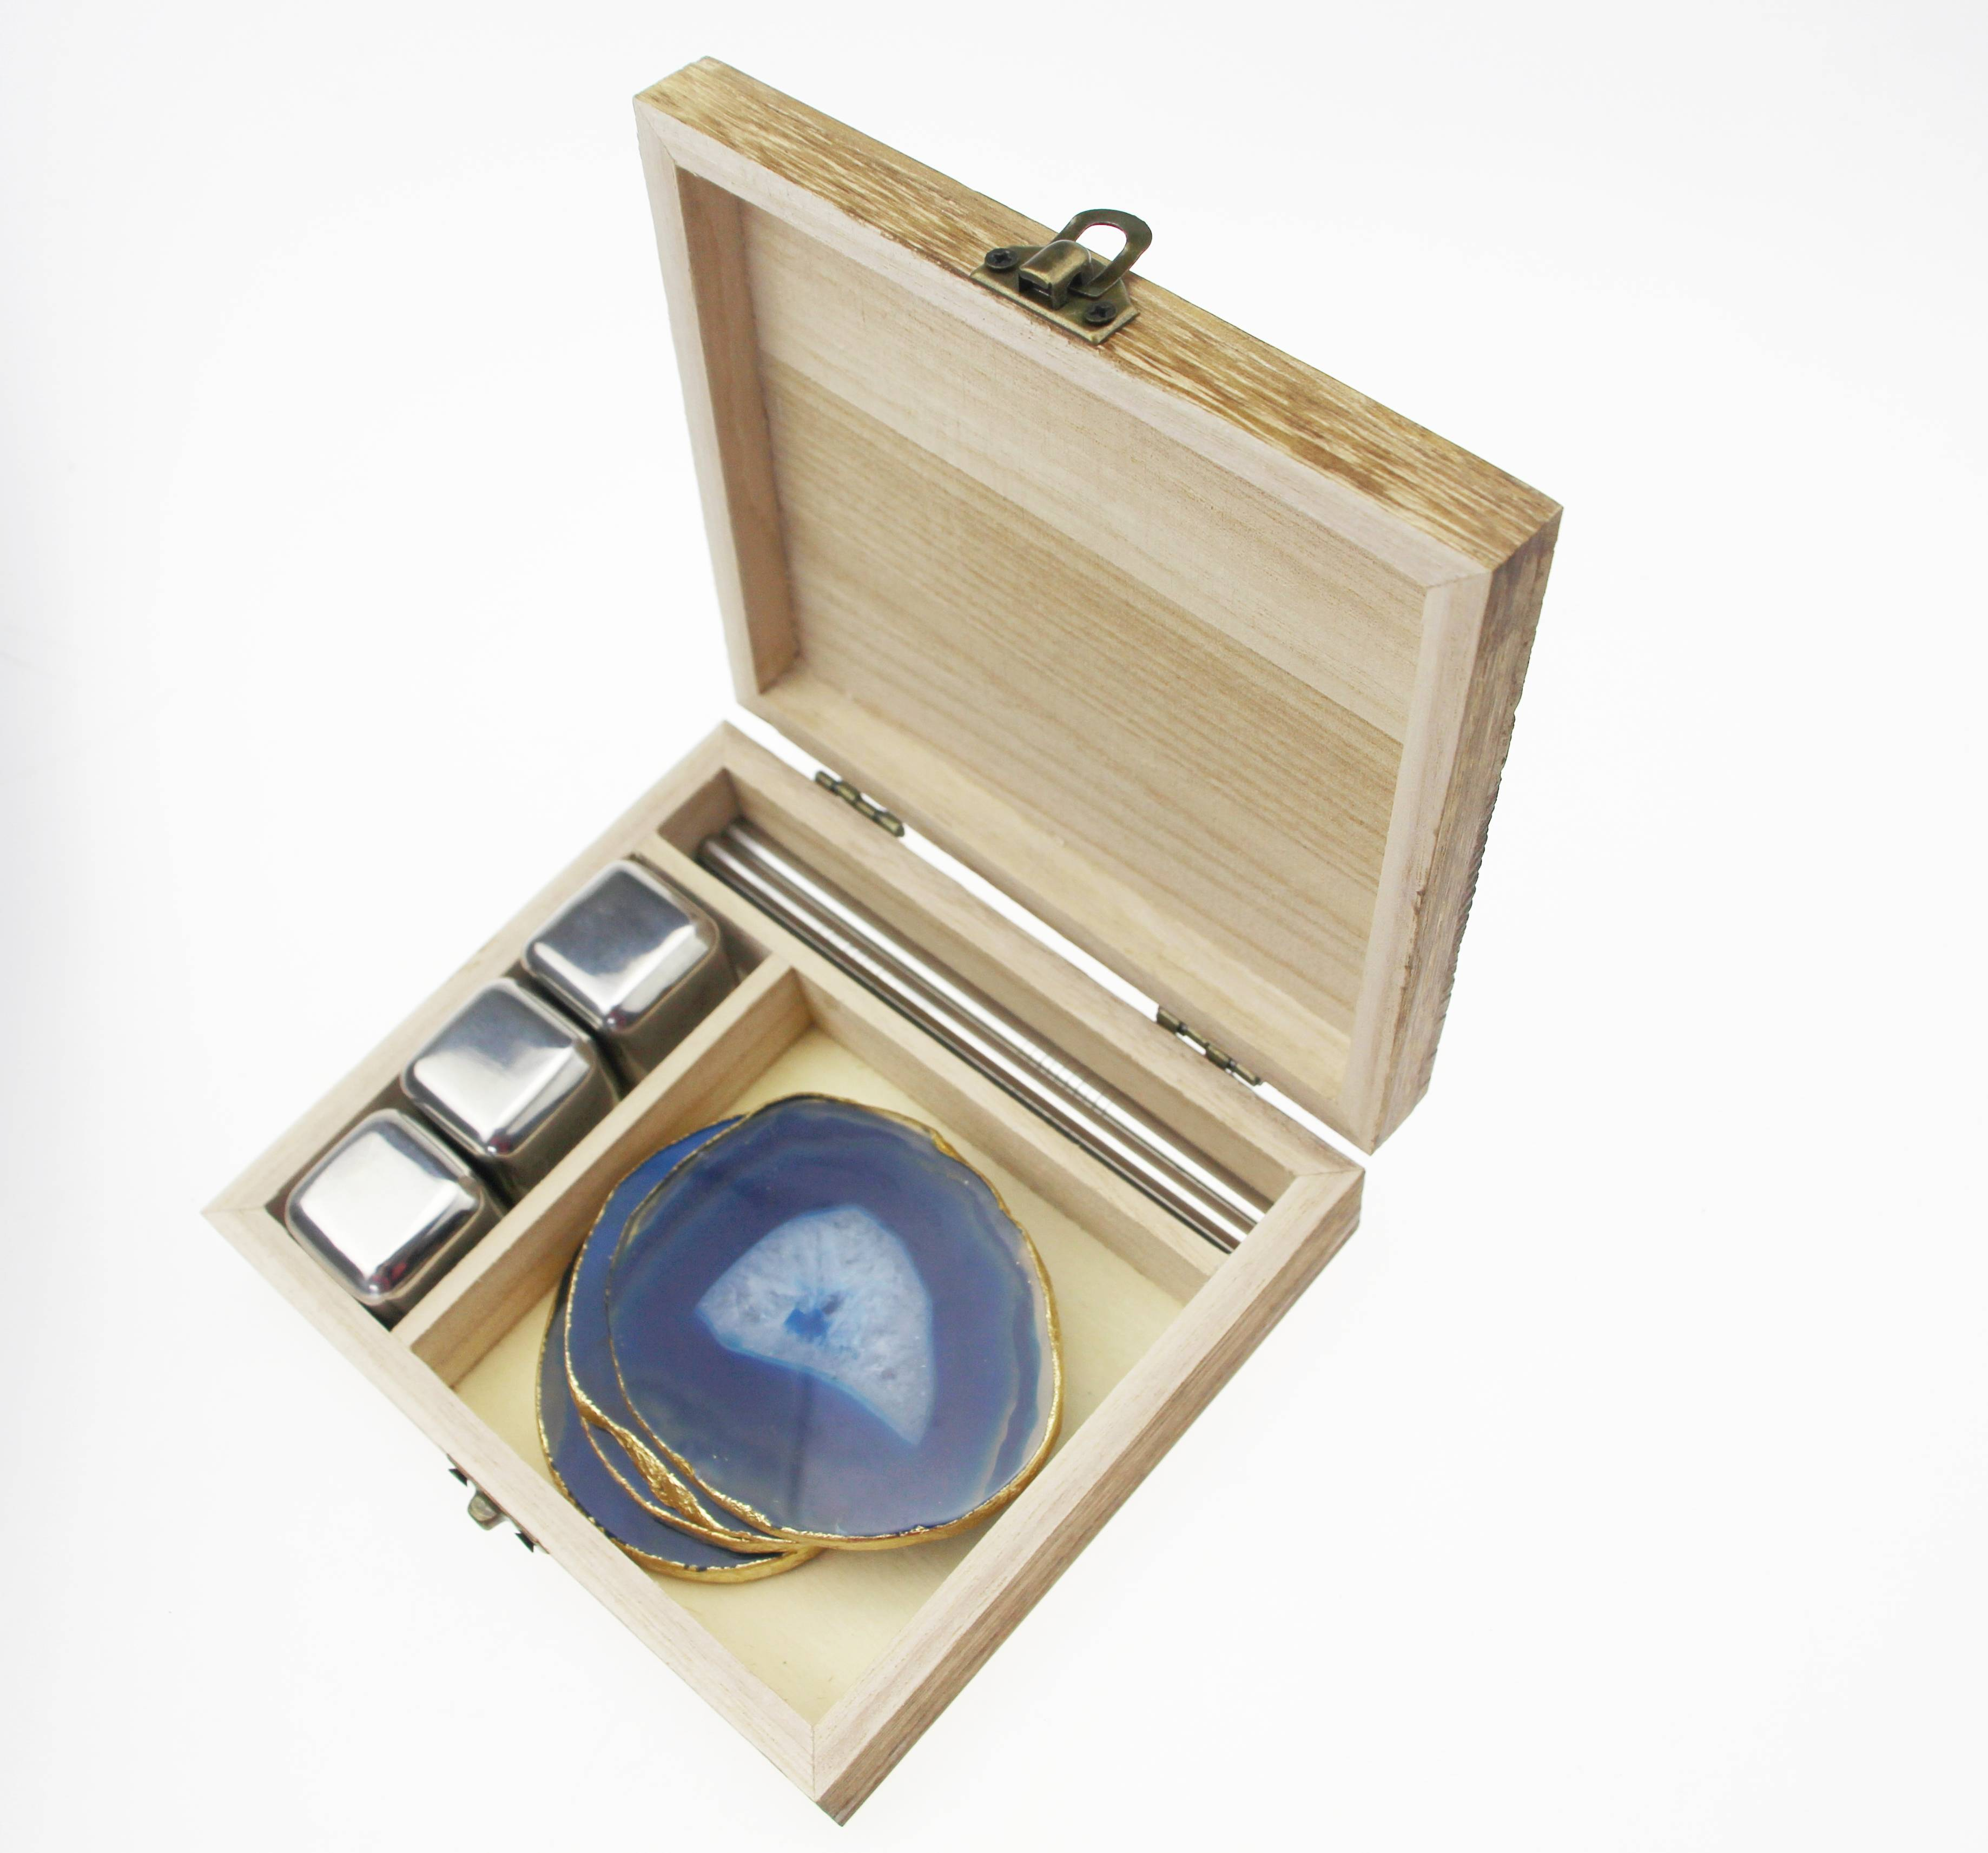 3x Whiskey Stone + Agate Coaster 4 pccs with golden rim + 4×304 stainless steel straw + wooden gift box Featured Image